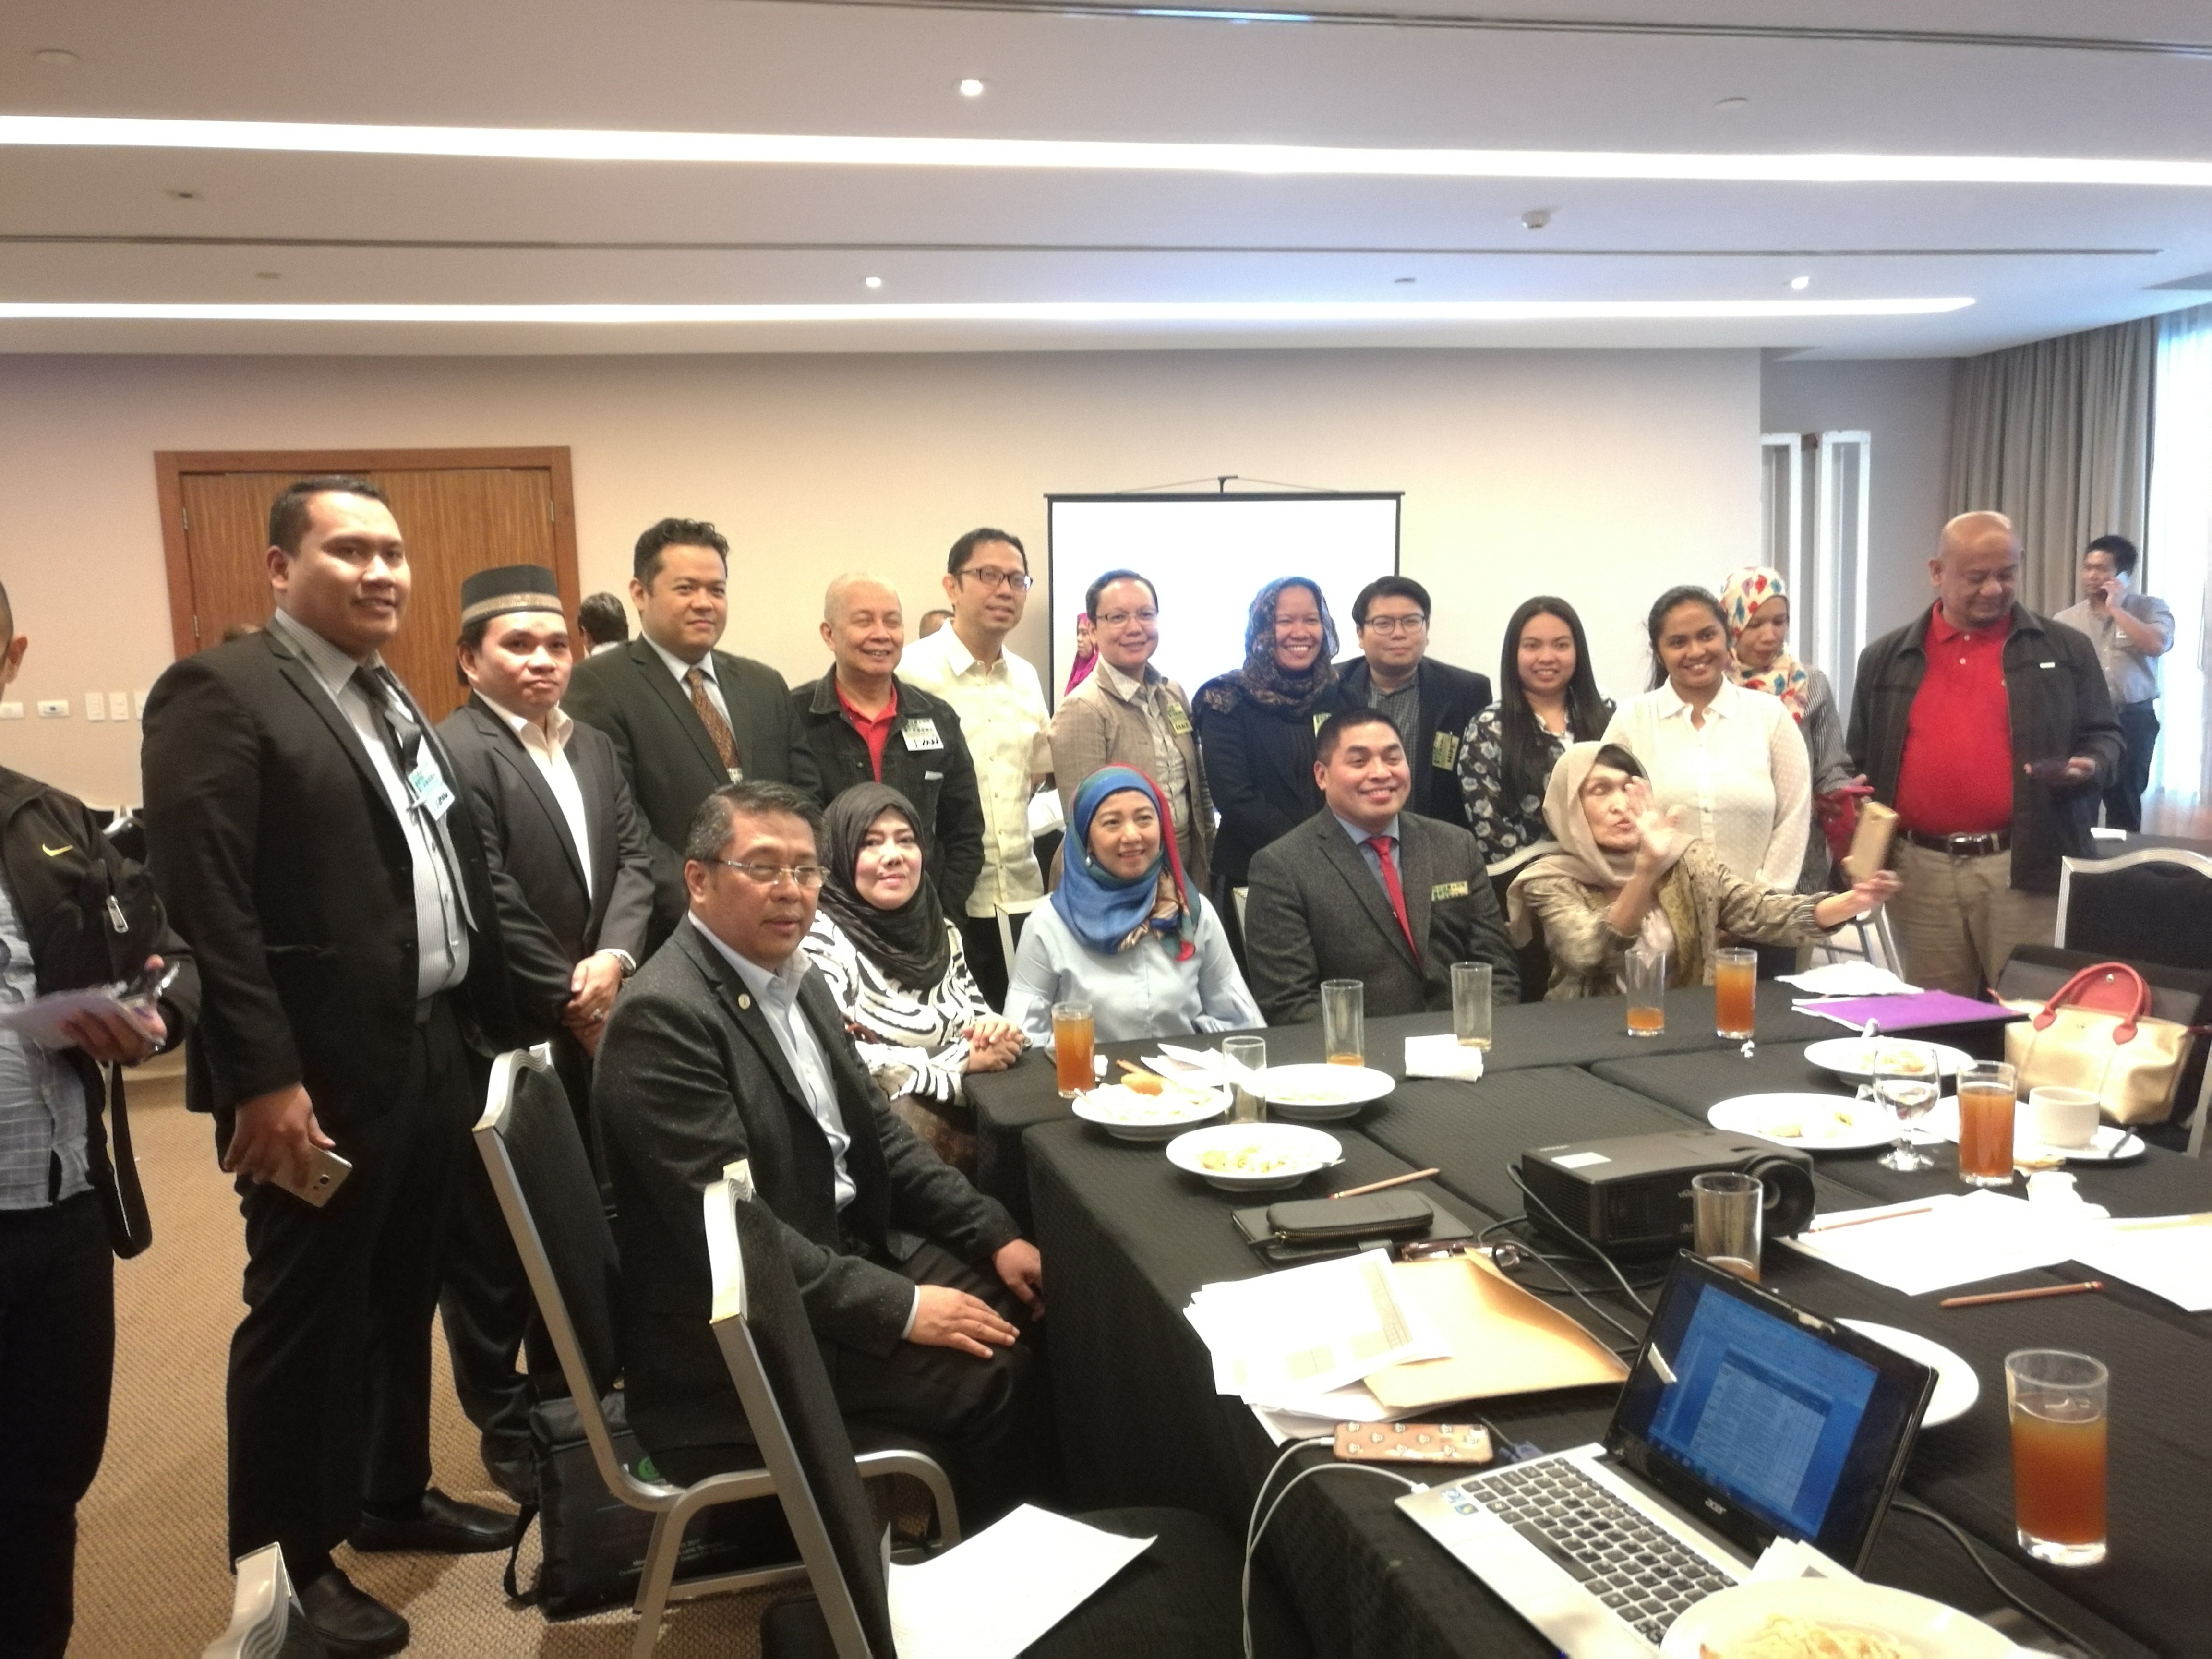 BFBCI ATTENDS DTI TWO-DAY HALAL STRATEGIC PLANNING WORKSHOP